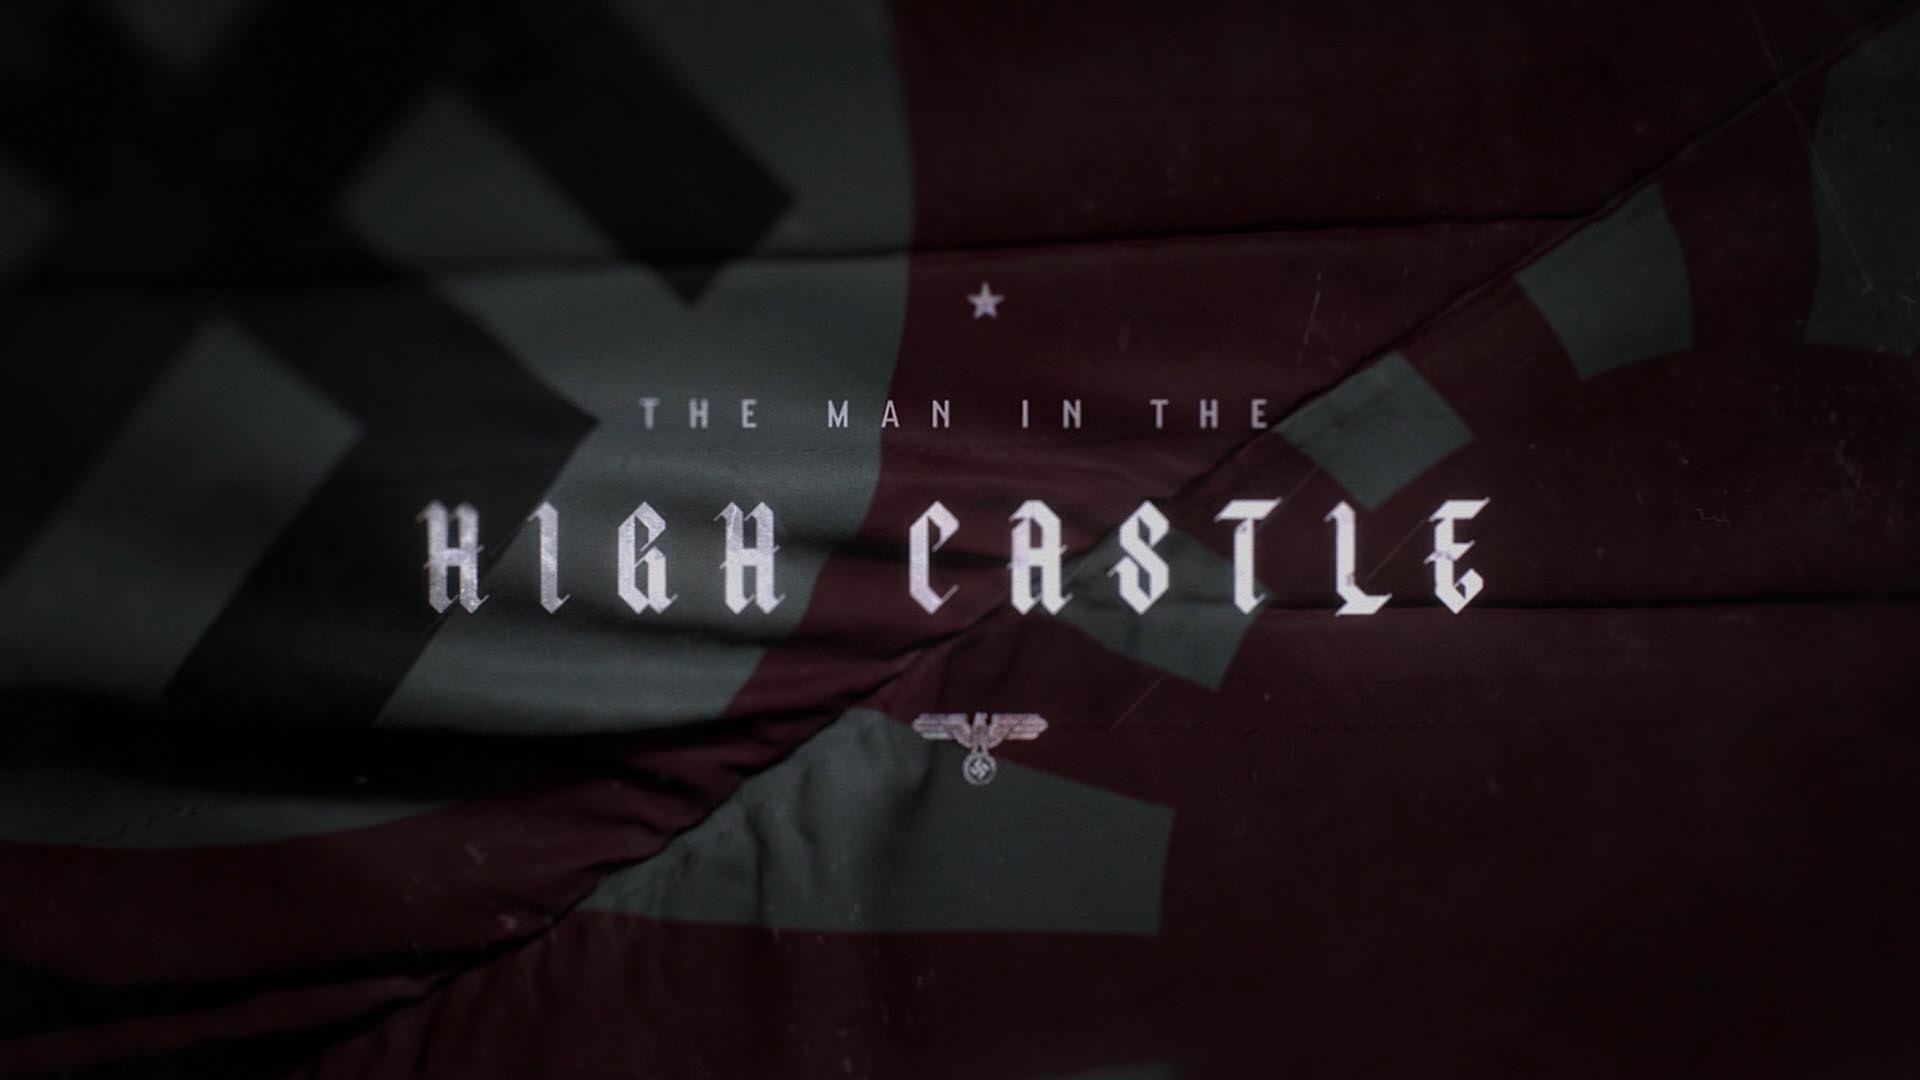 Image from The Man in the High Castle Scott Free Productions by Antibody.